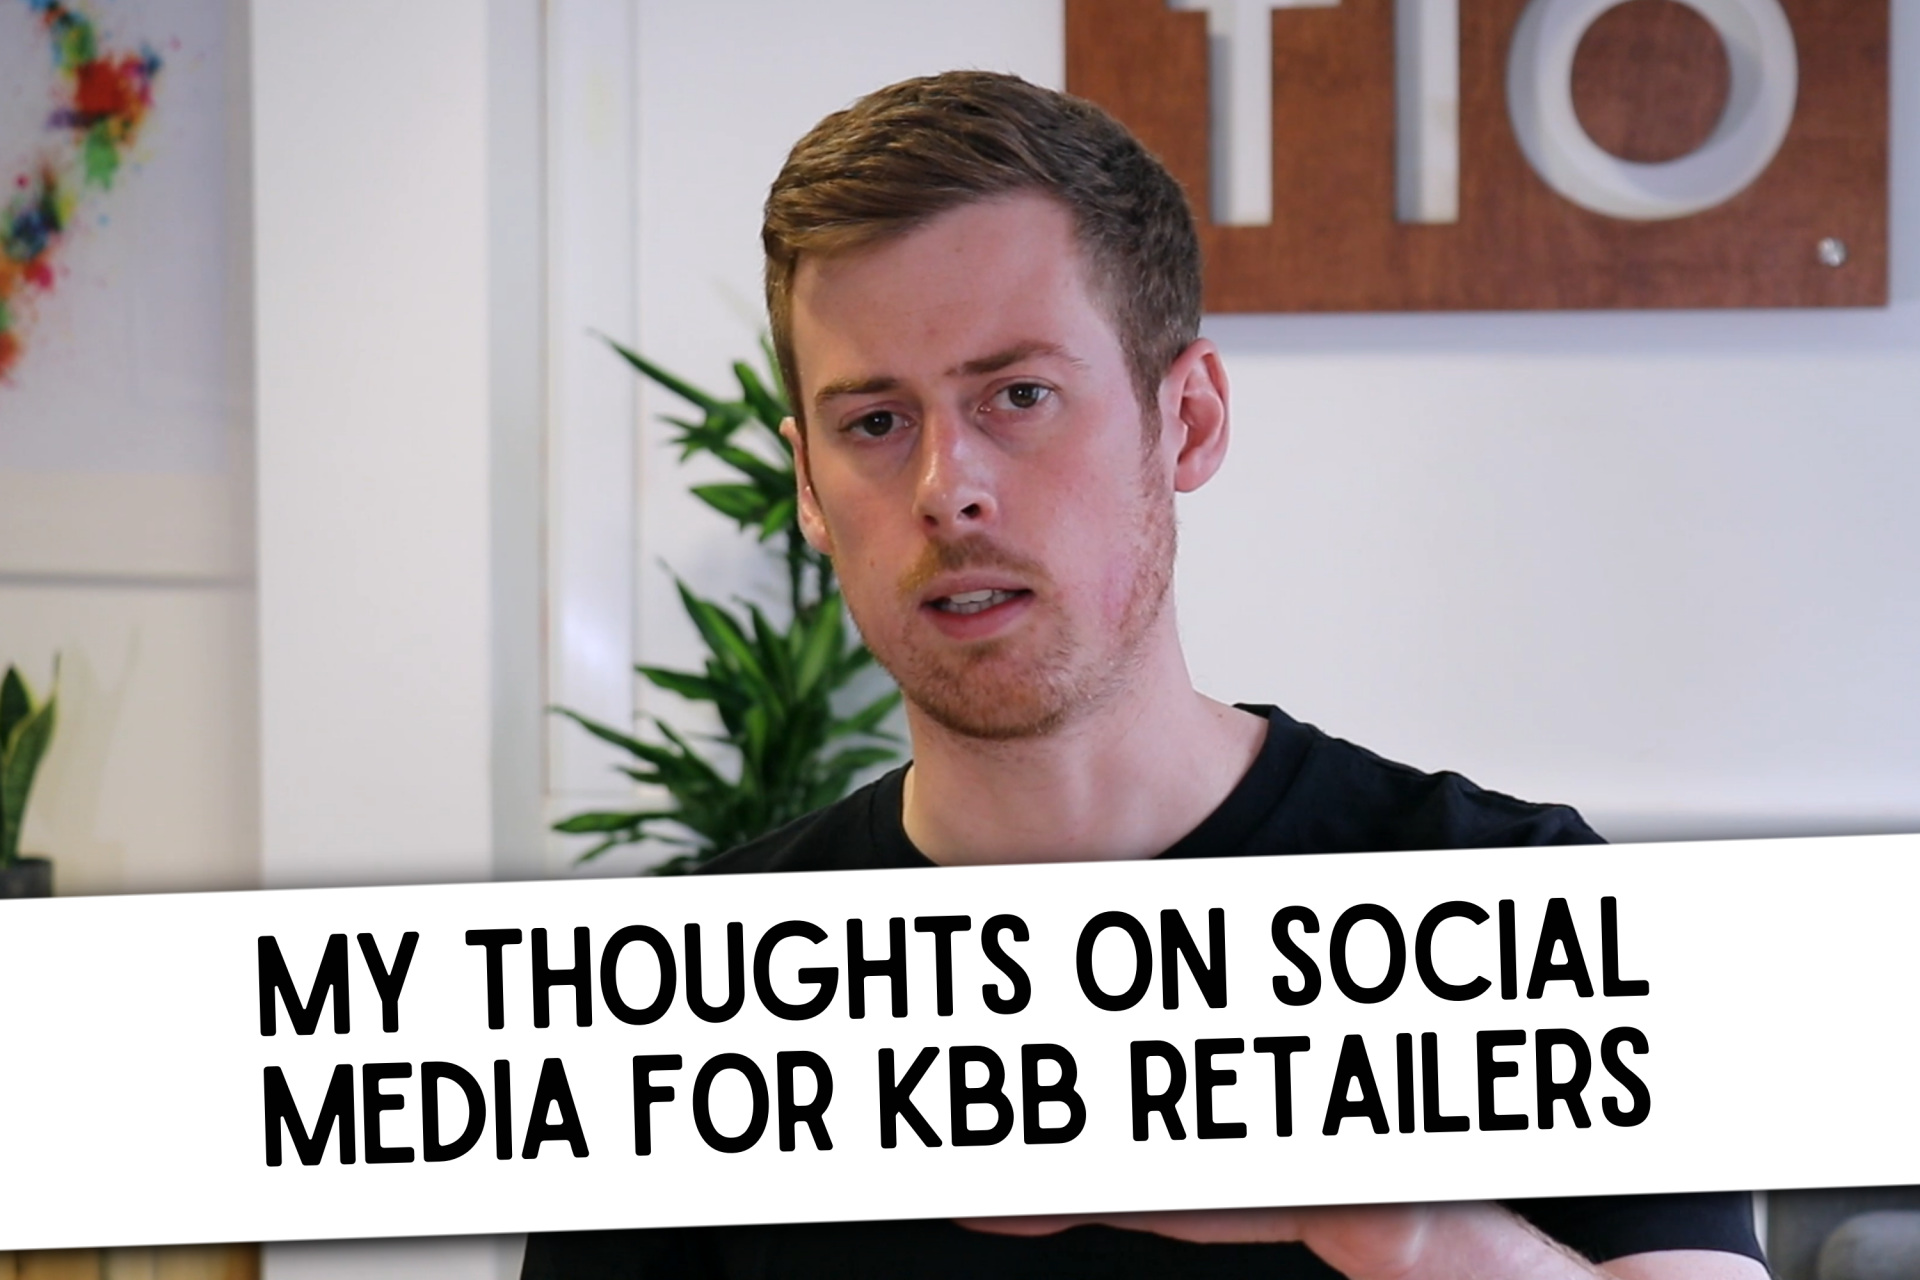 Thoughts on social media for kitchen retailers